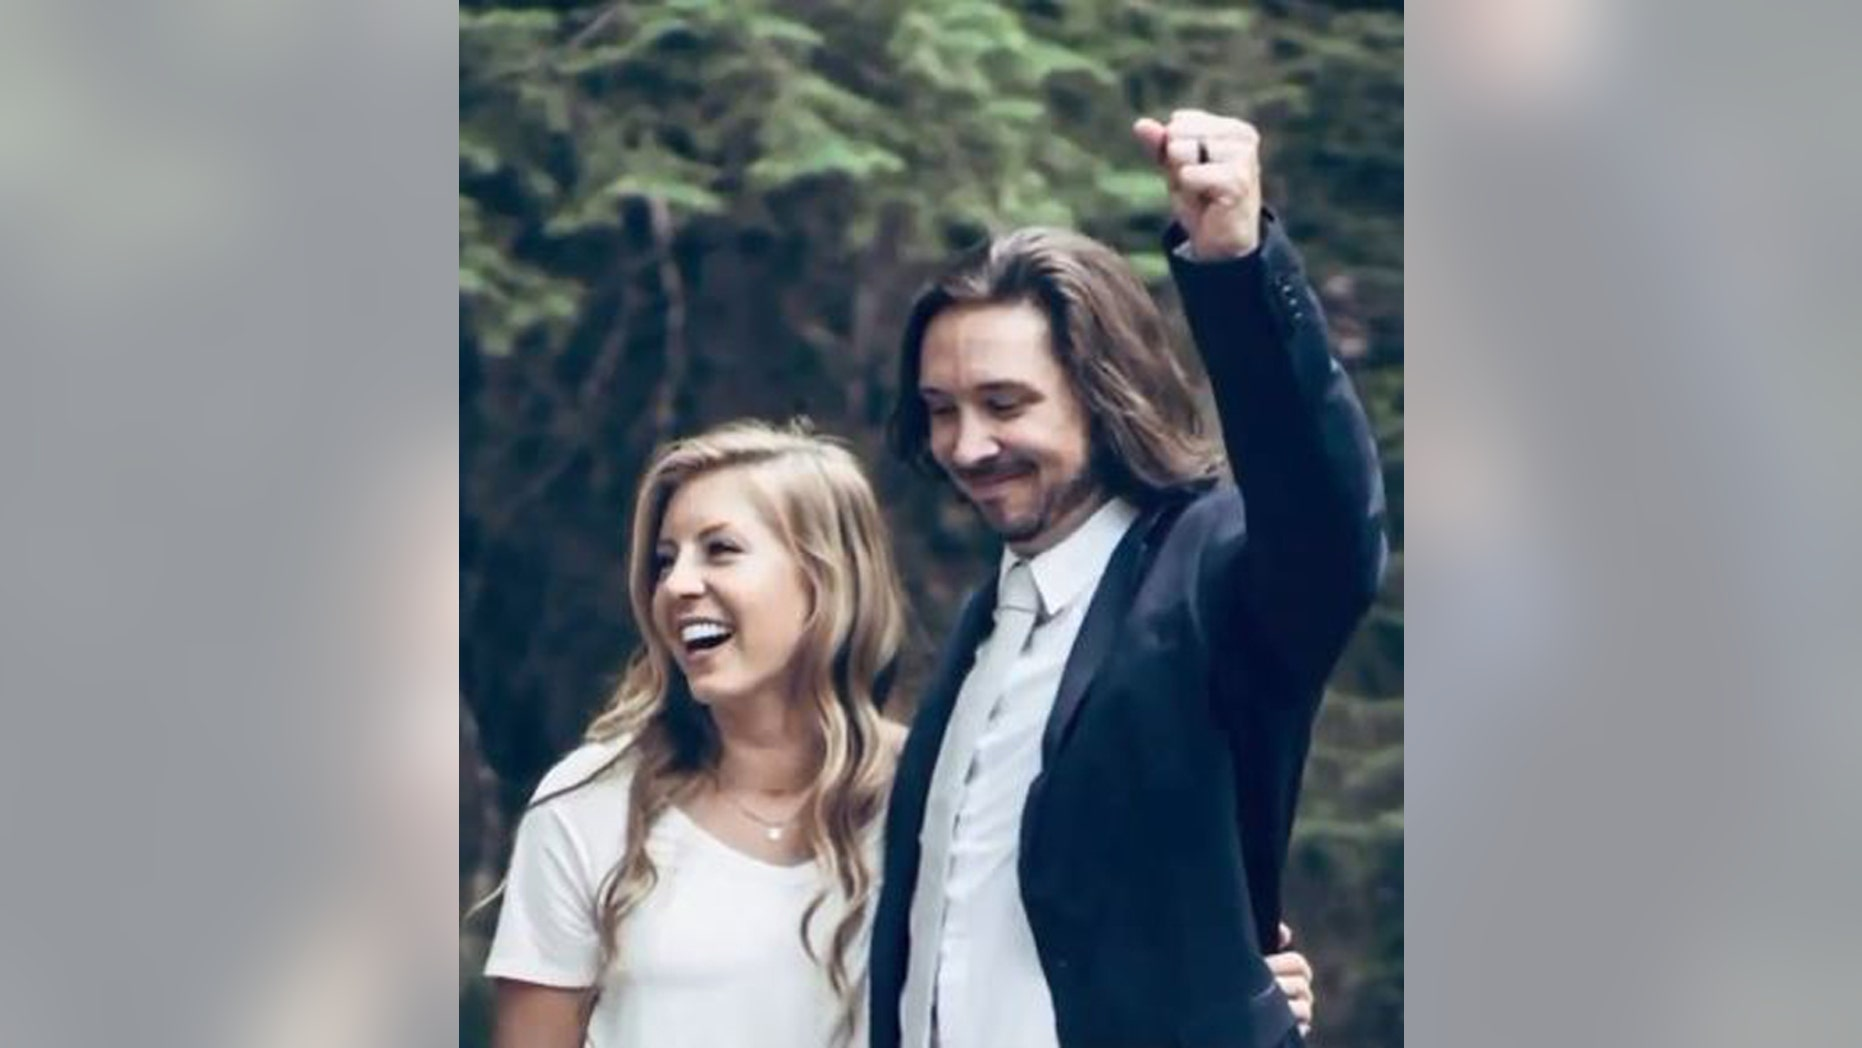 Utah newlyweds Amy Moffat (L), 28, and Stephen Graham, 30, died in a Washington accident, reports said.